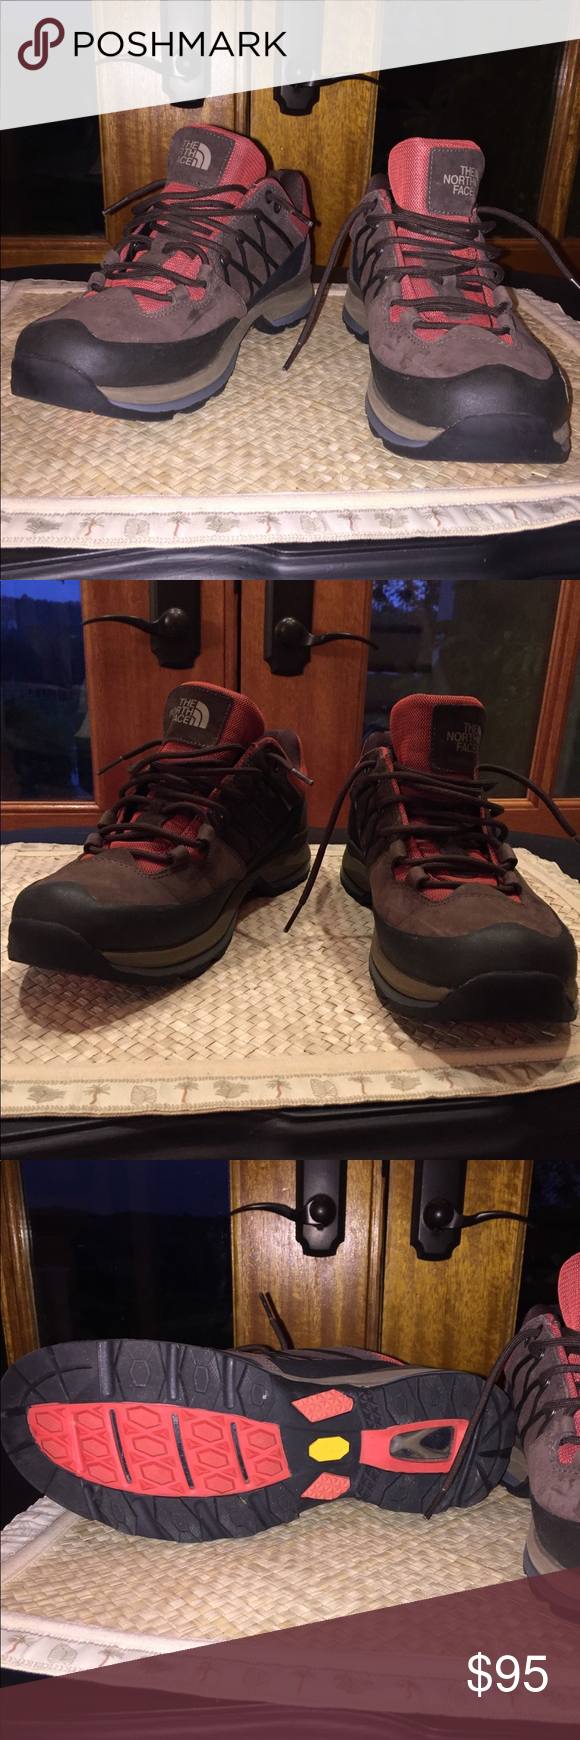 35d5422fd The North Face Northotic Pro 2.0 Men's U.S. Size 10. Worn once ...